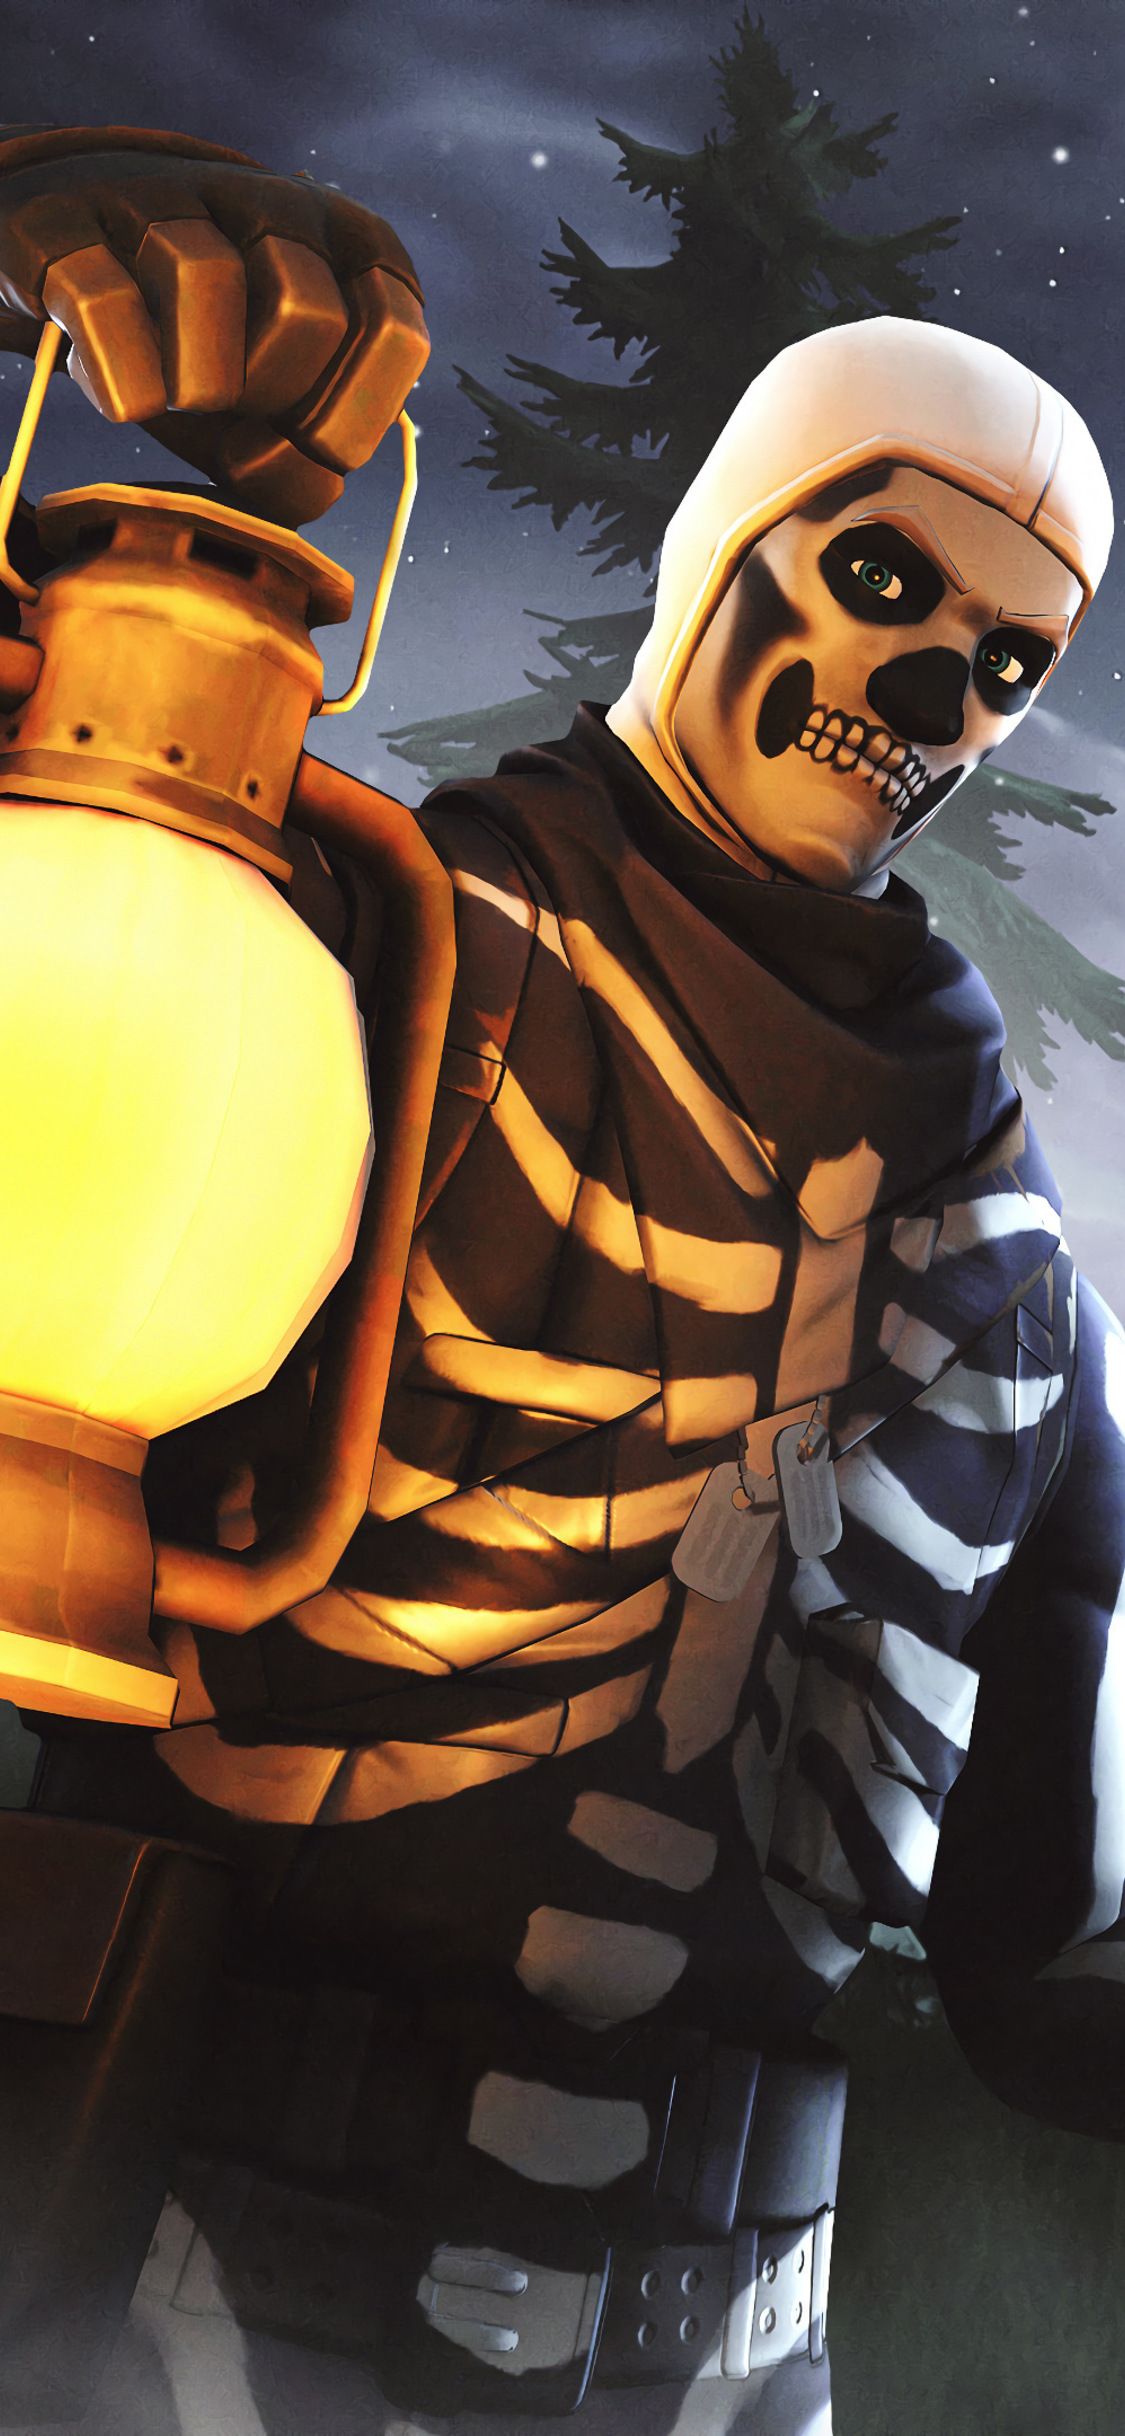 Free Download Skull Trooper Iphone Xs Fortnite Background 4299 Wallpapers And 1125x2436 For Your Desktop Mobile Tablet Explore 28 Fortnite Halloween Wallpapers Fortnite Halloween Wallpapers Fortnite Halloween 4k Wallpapers Halloween Wallpapers